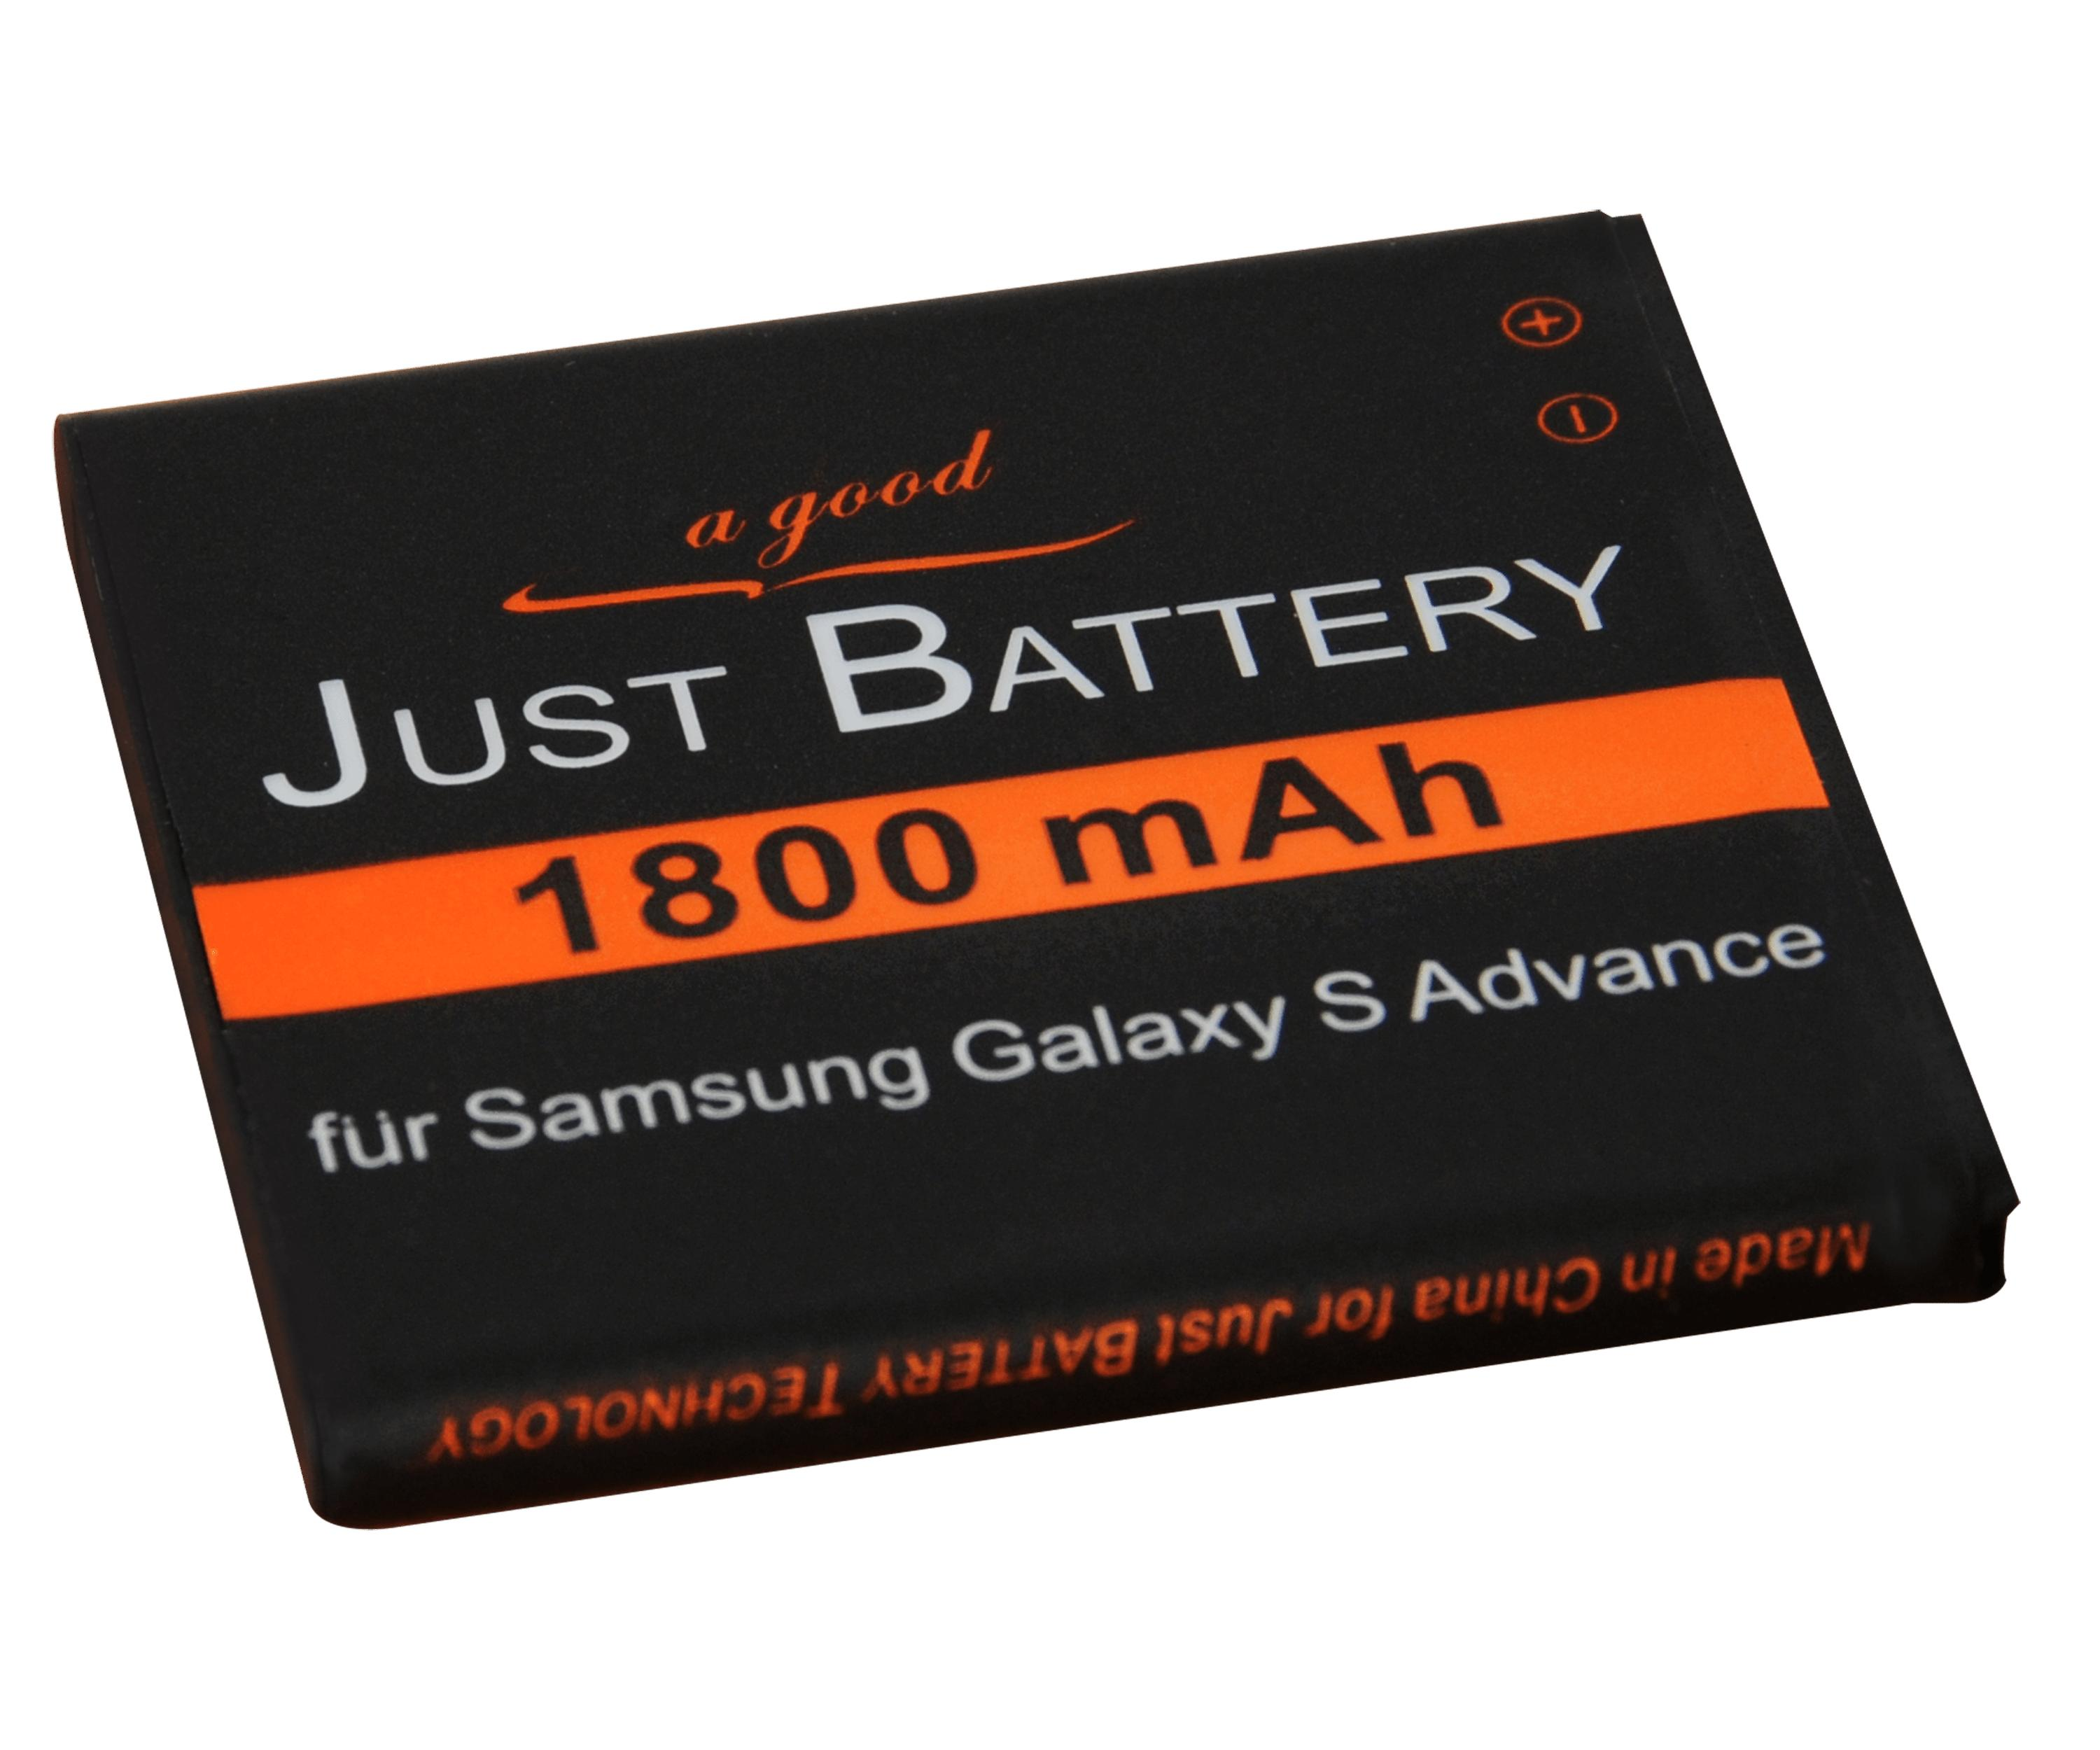 Battery for Samsung Galaxy S GT-i9070 advance